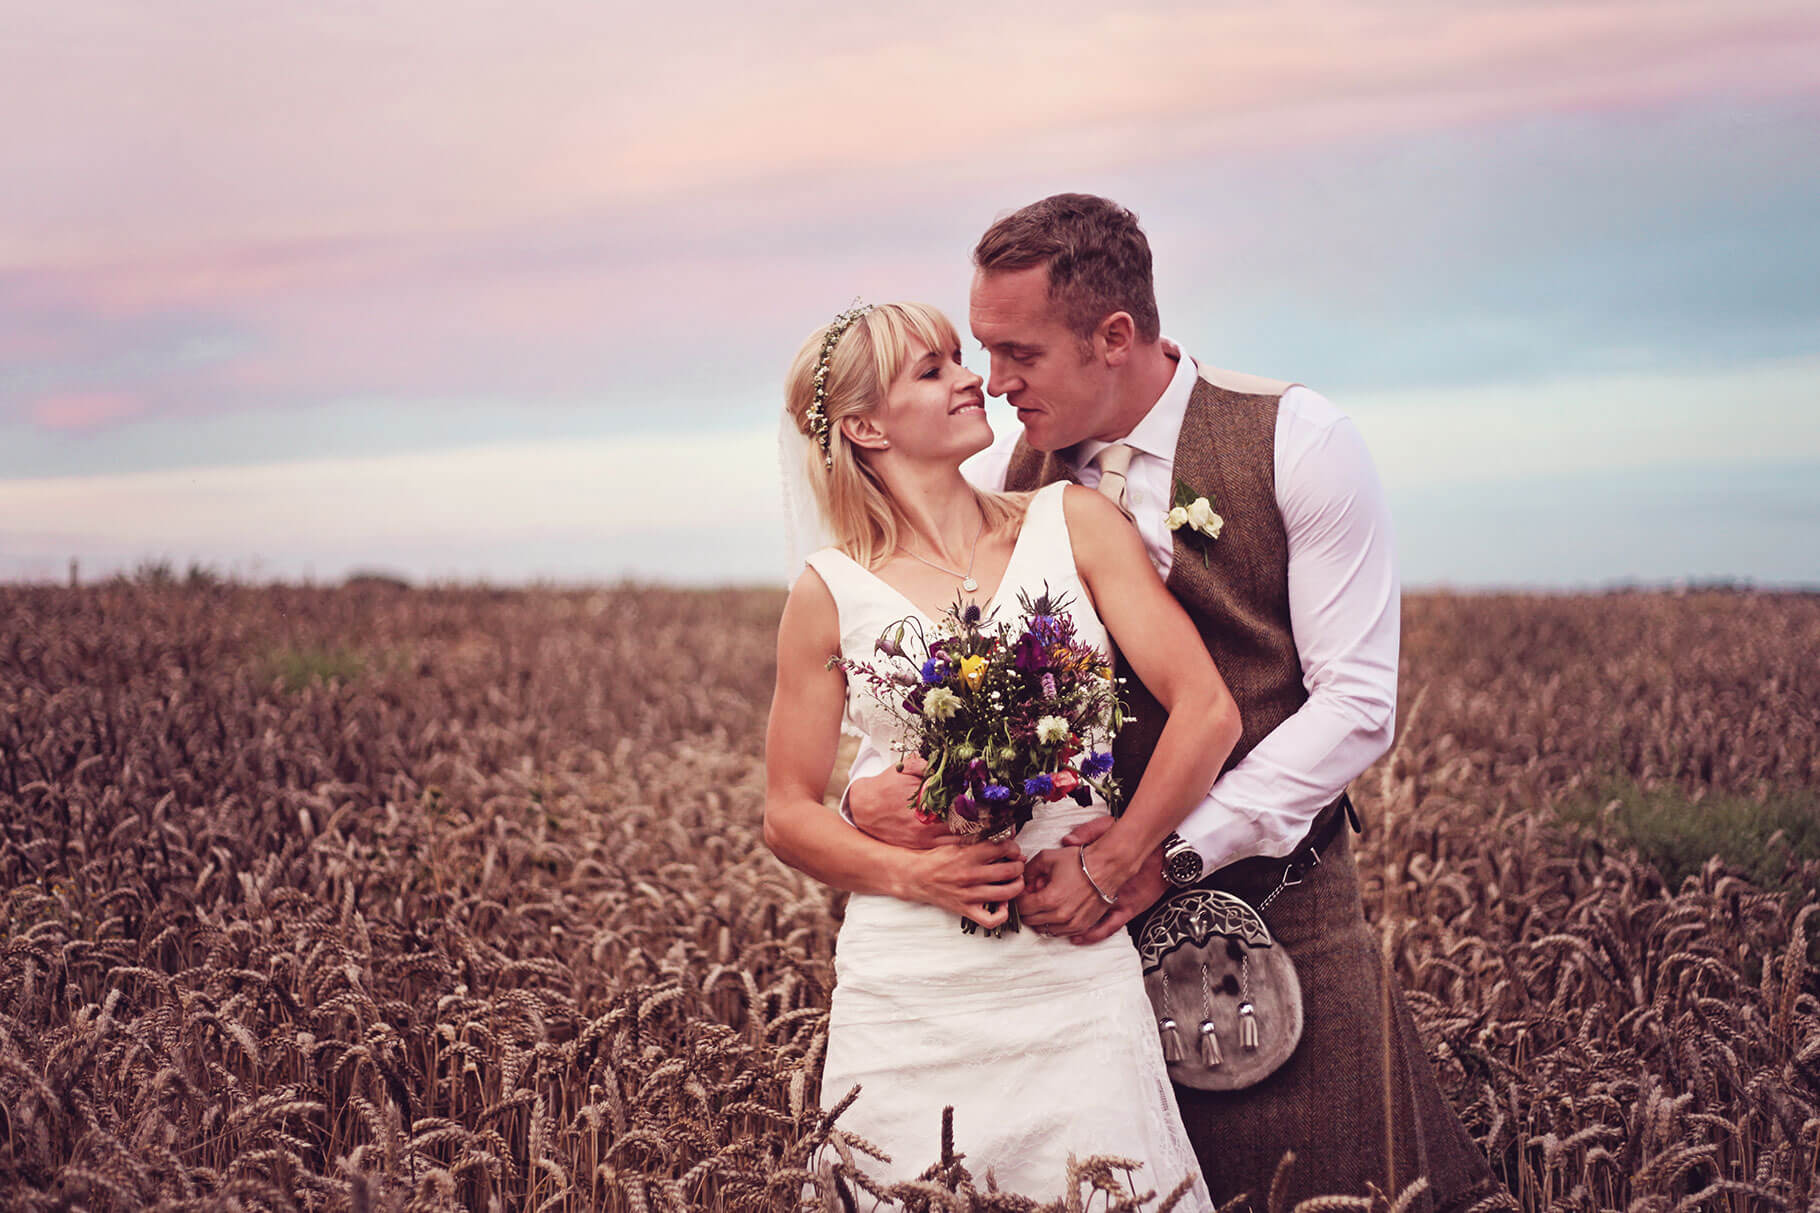 Sunset Wedding Photography of Bride and Groom in Crop field